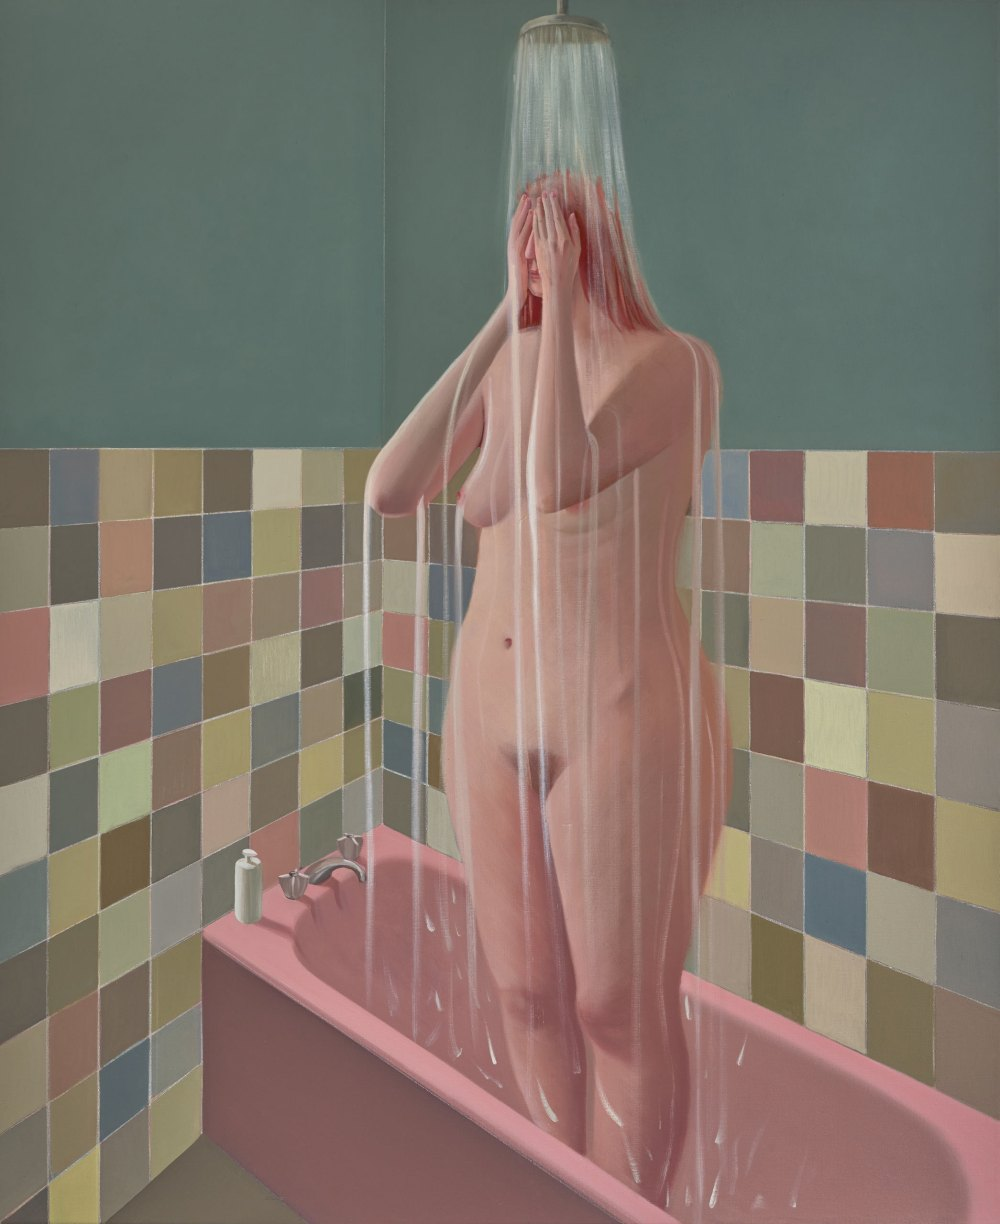 Prudence Flint - Shower